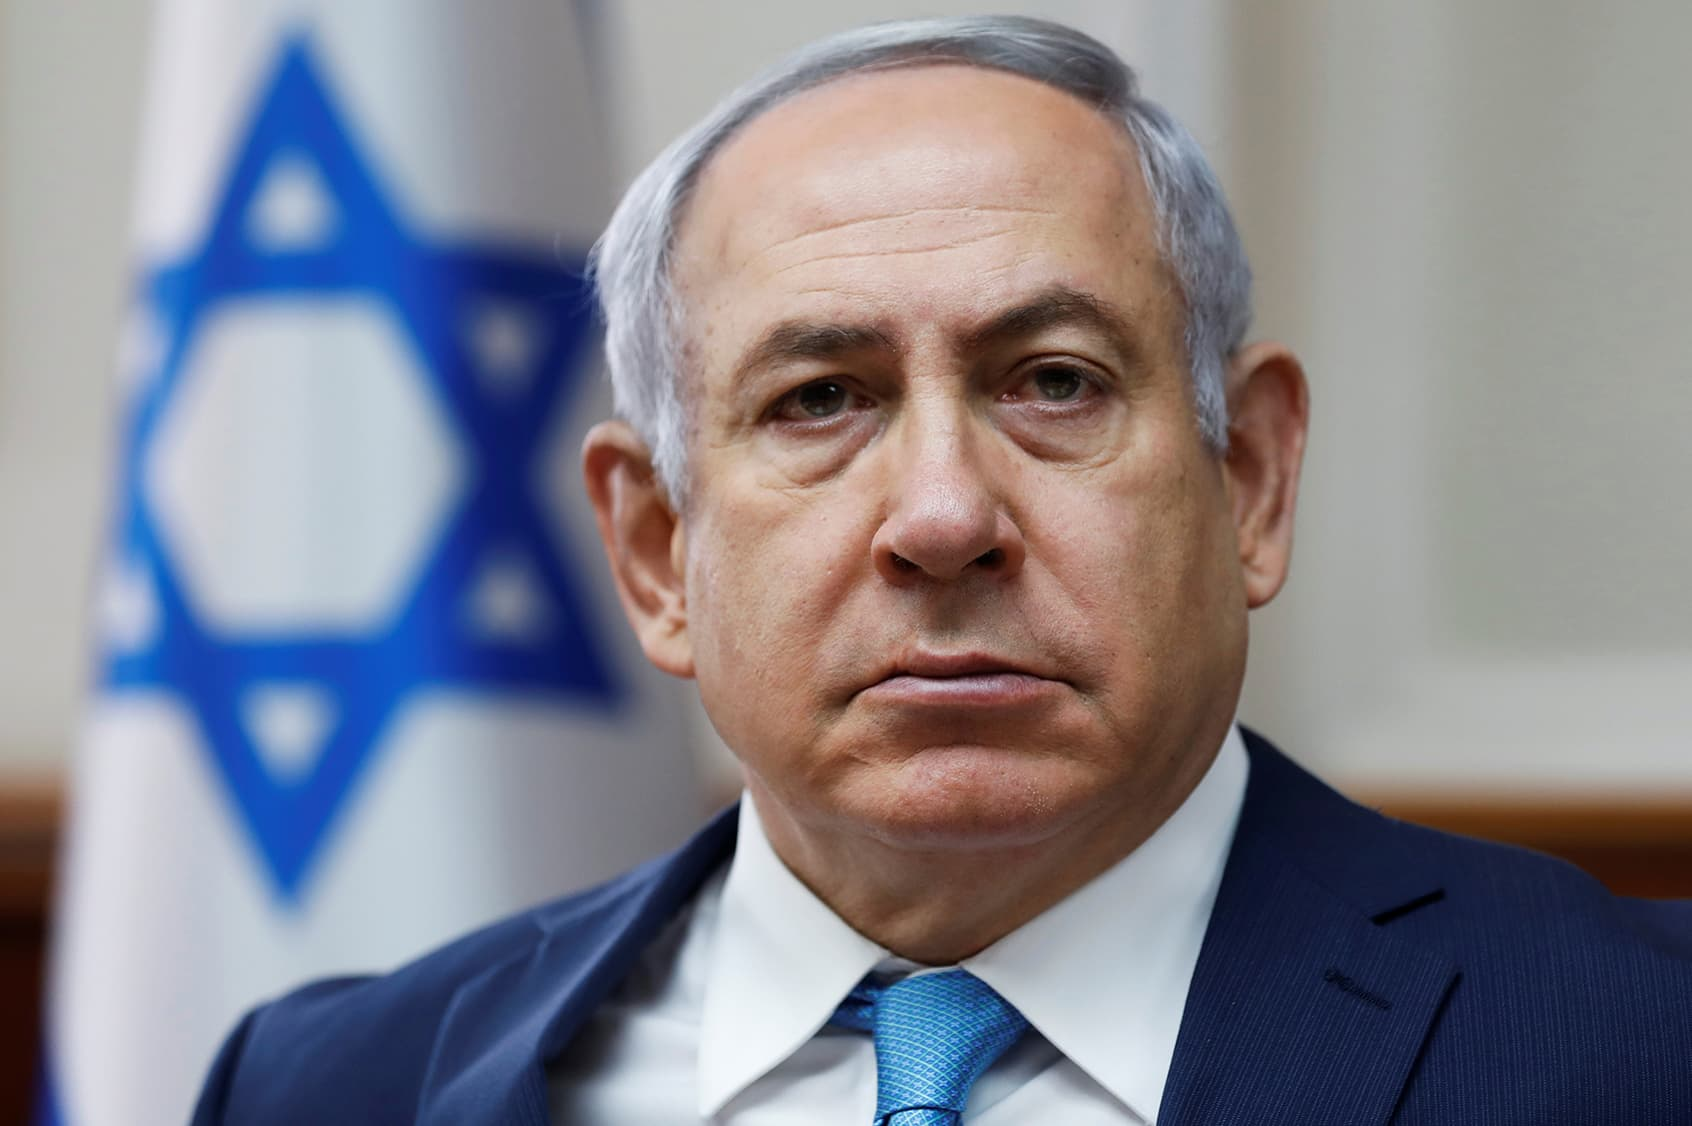 Israeli Prime Minister Benjamin Netanyahu indicted on charges of fraud, breach of trust and bribery